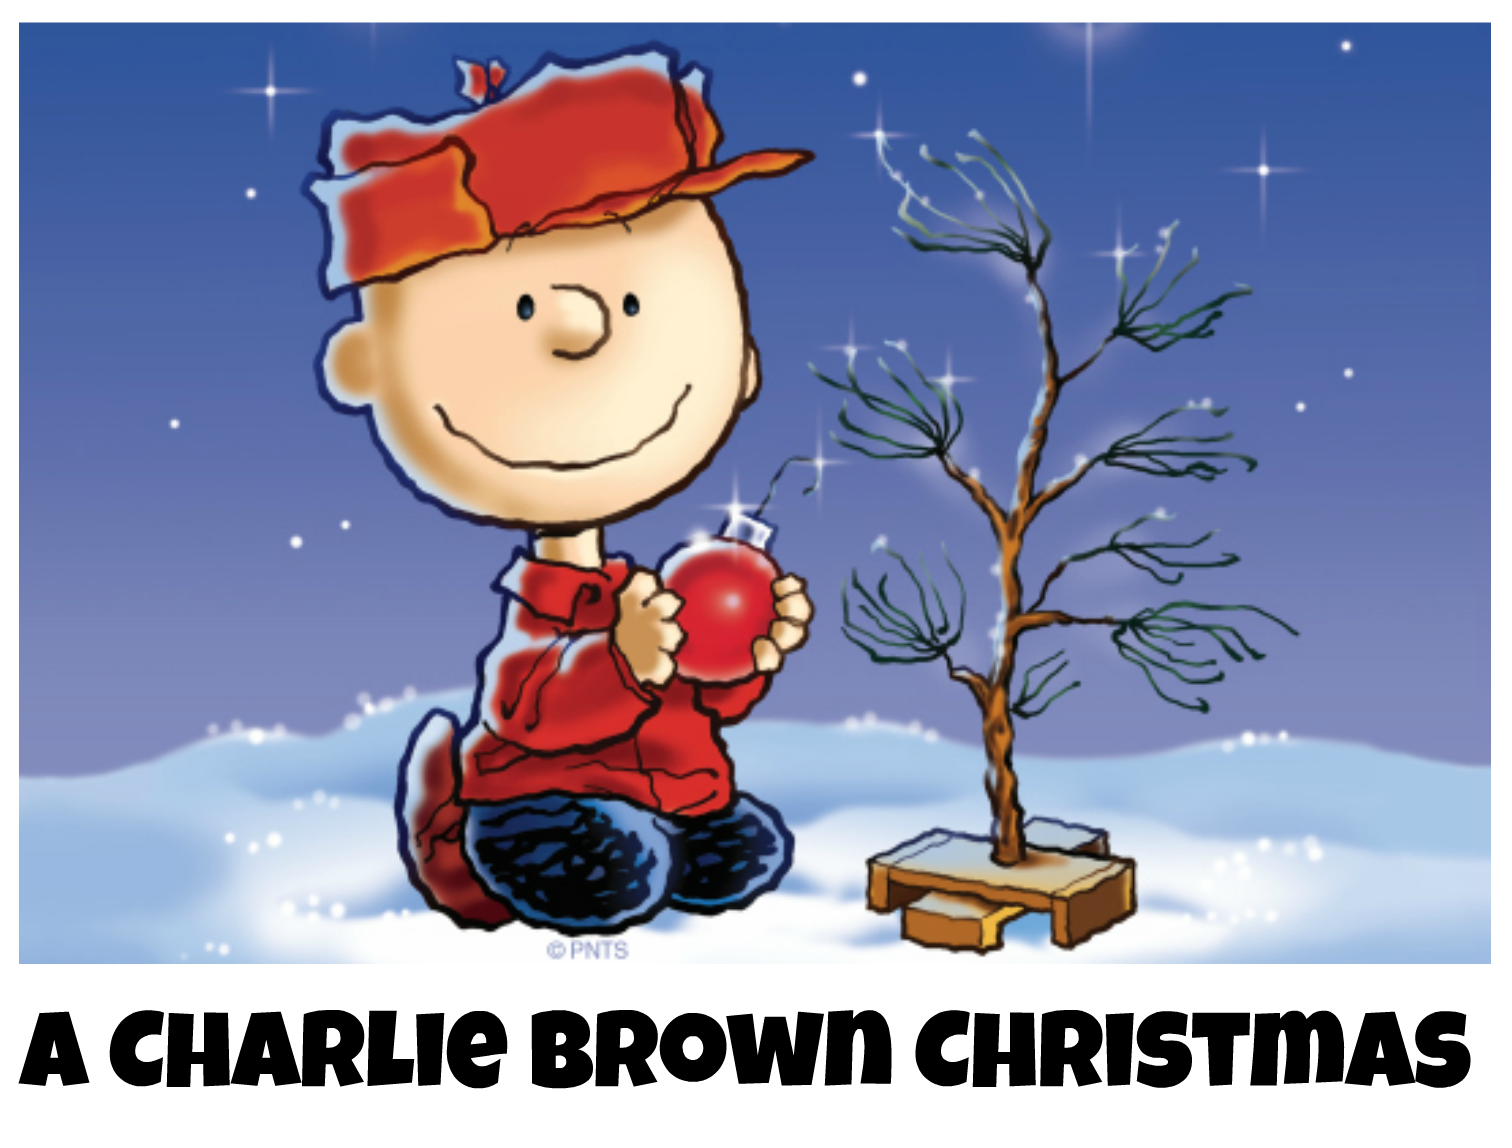 Charlie Brown Christmas Images.Auditions For A Charlie Brown Christmas Everybody S